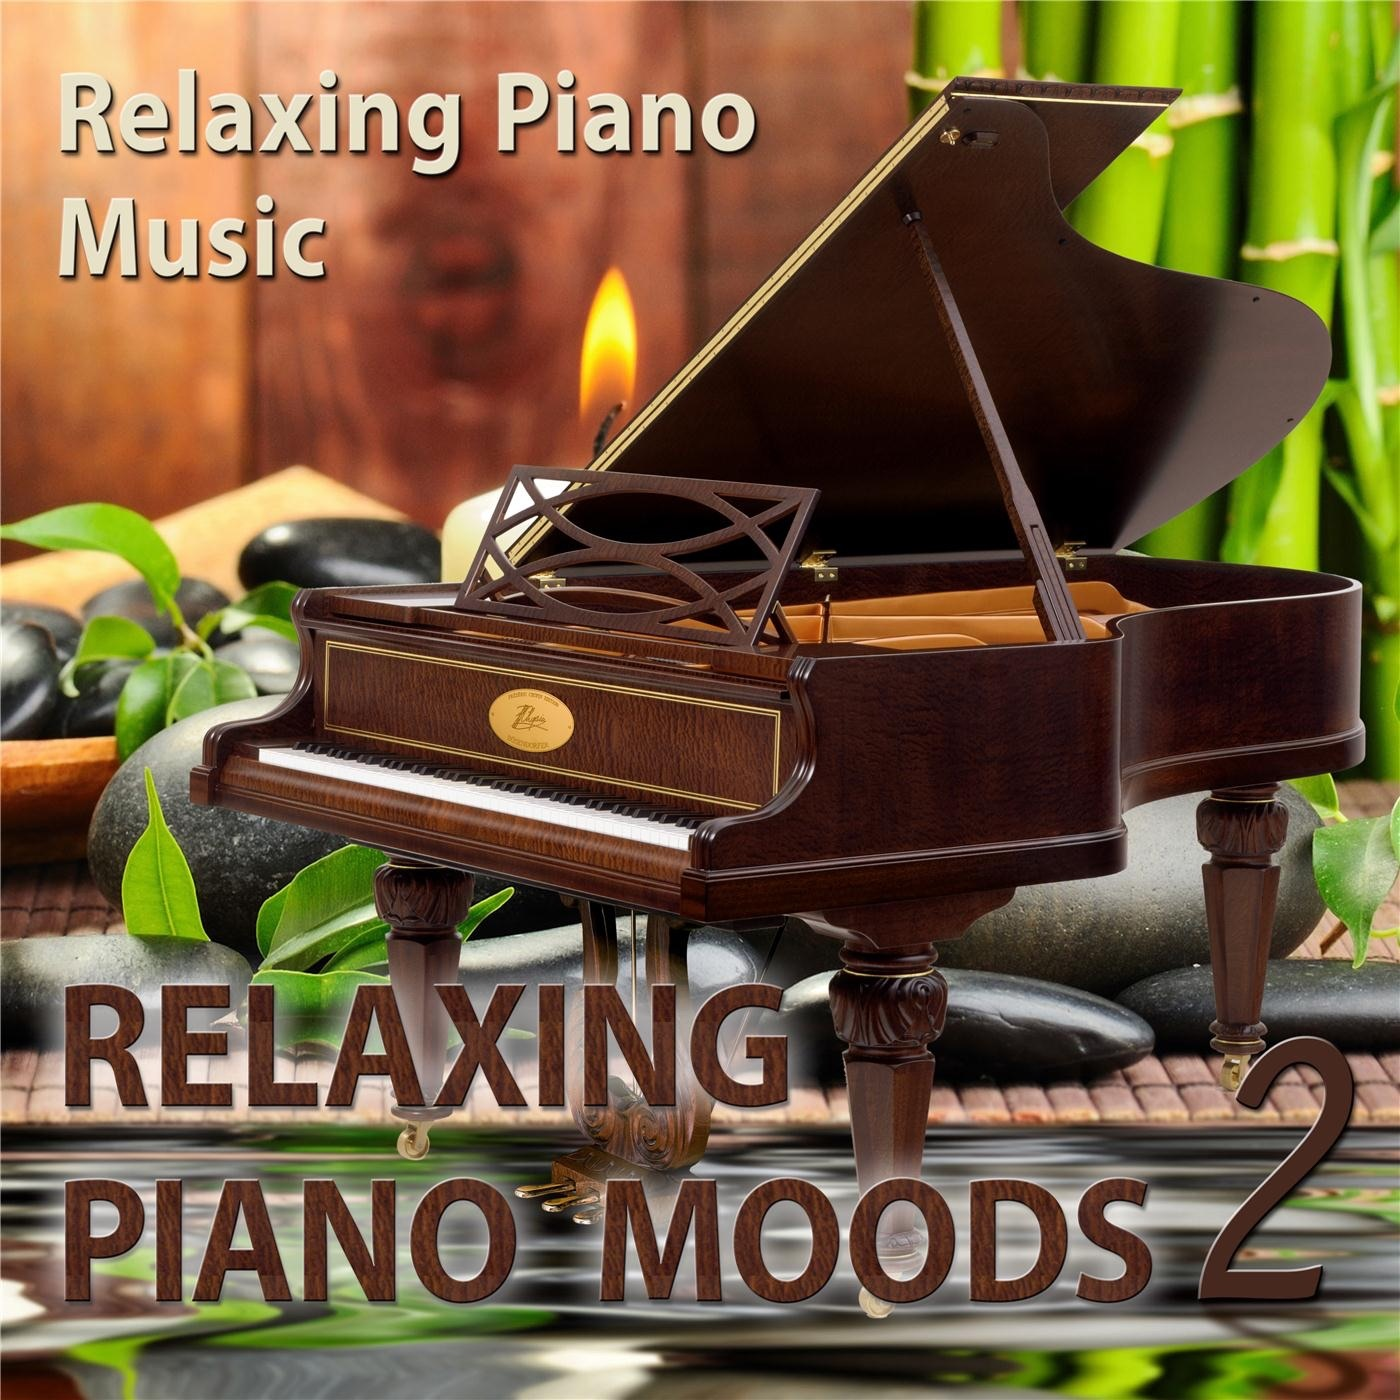 Relaxing Piano Moods 2